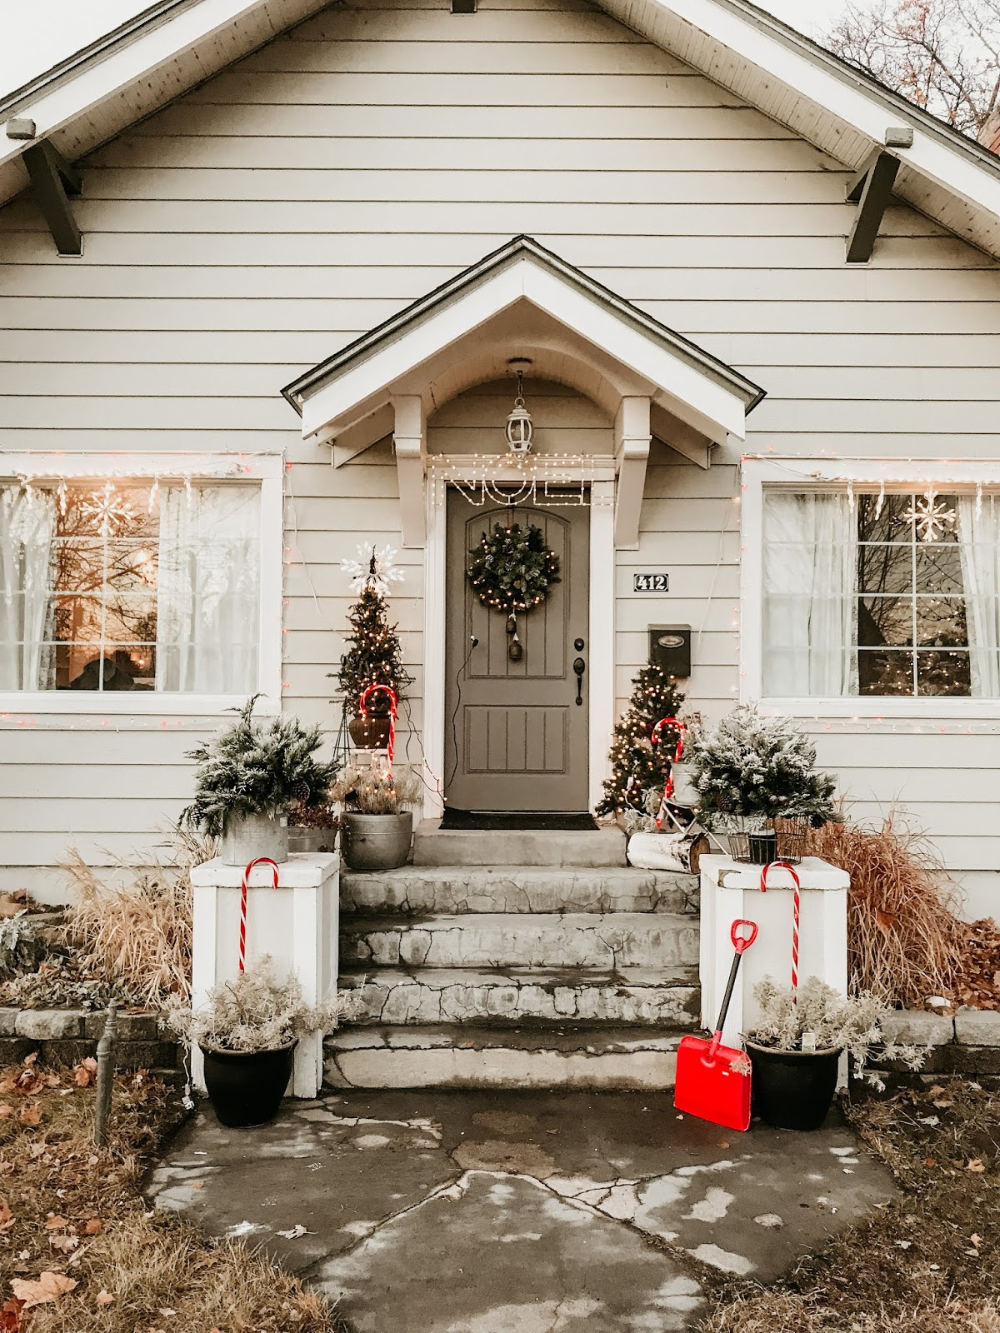 2019 Christmas House Tour - The Wicker House